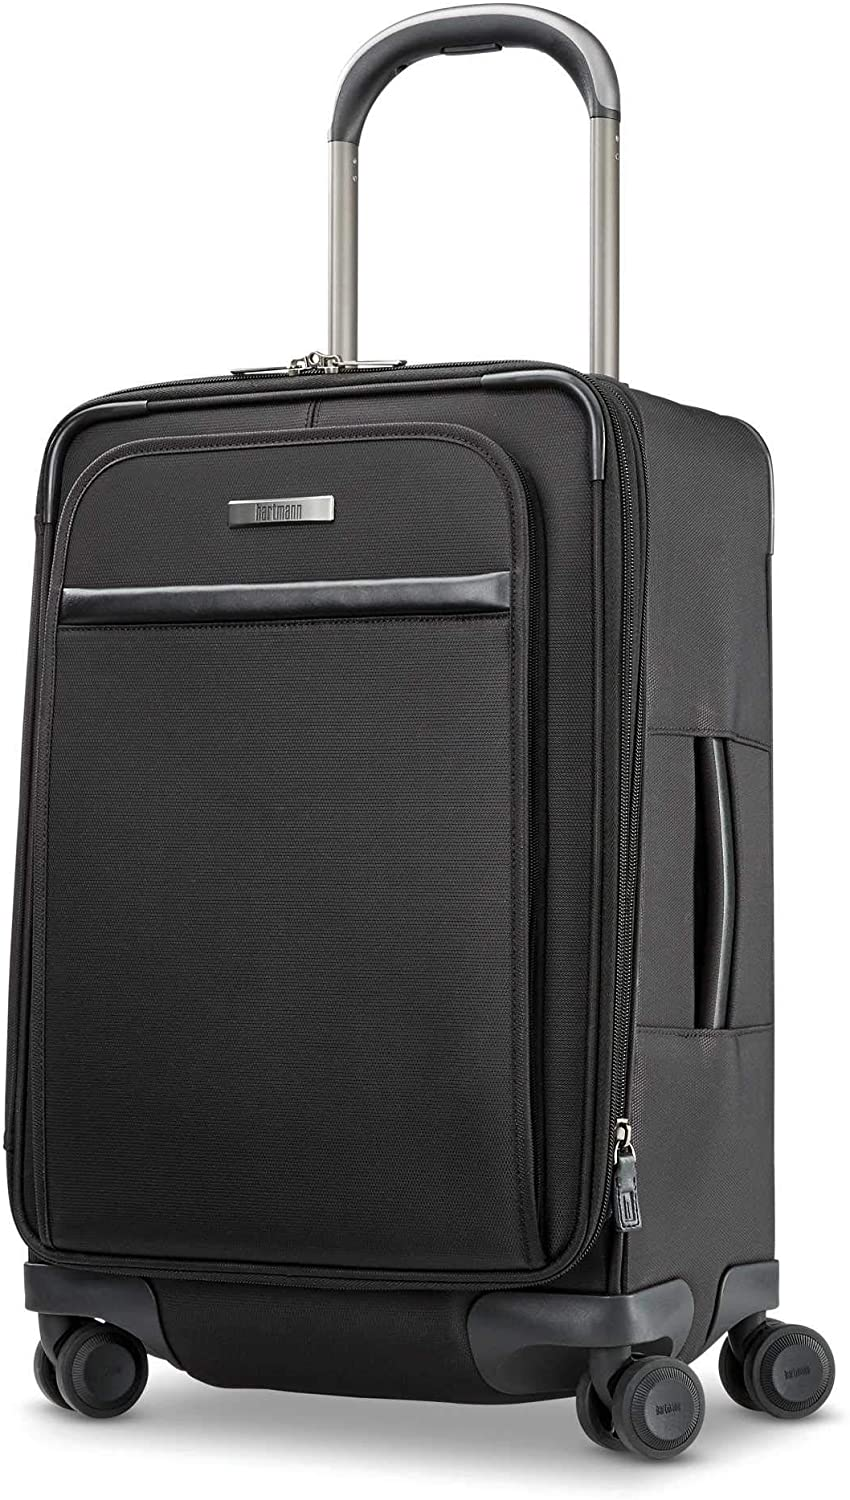 Hartmann Global Carry-On Rolling Suitcase in black